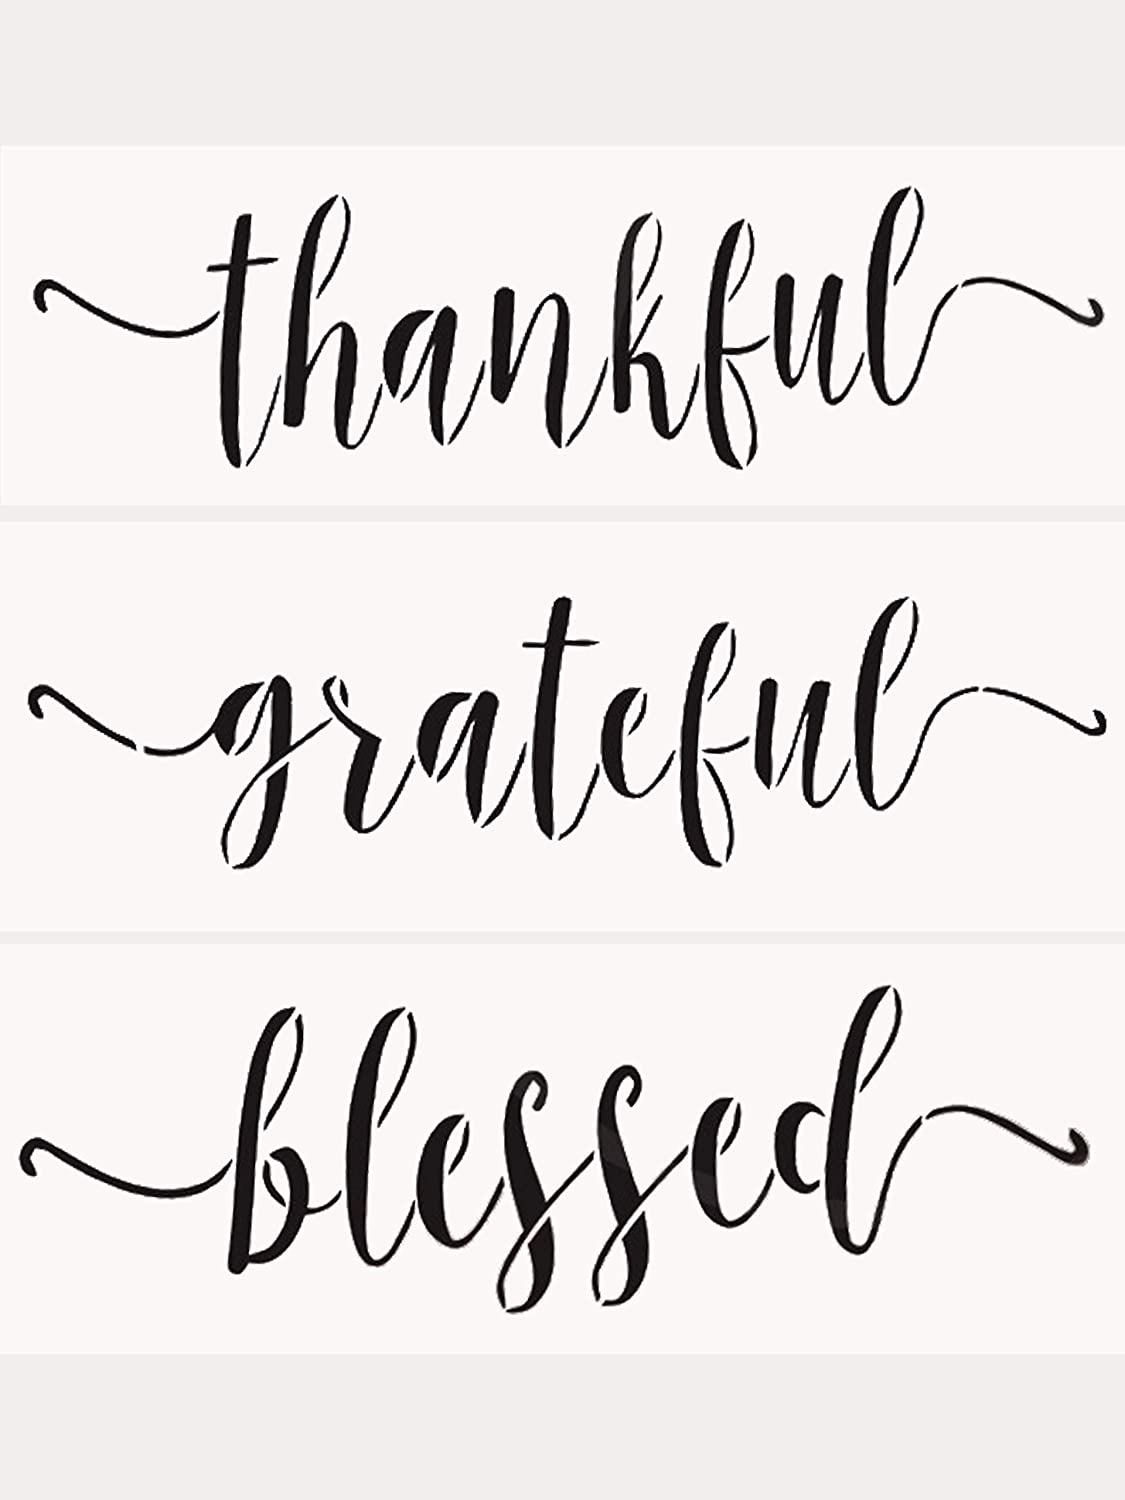 Grateful Thankful Blessed Stencils 3 Pcs Stencil Set for Painting on Wood Laser Cut Painting Stencil for Wall, Signs, Crafts Home Decor